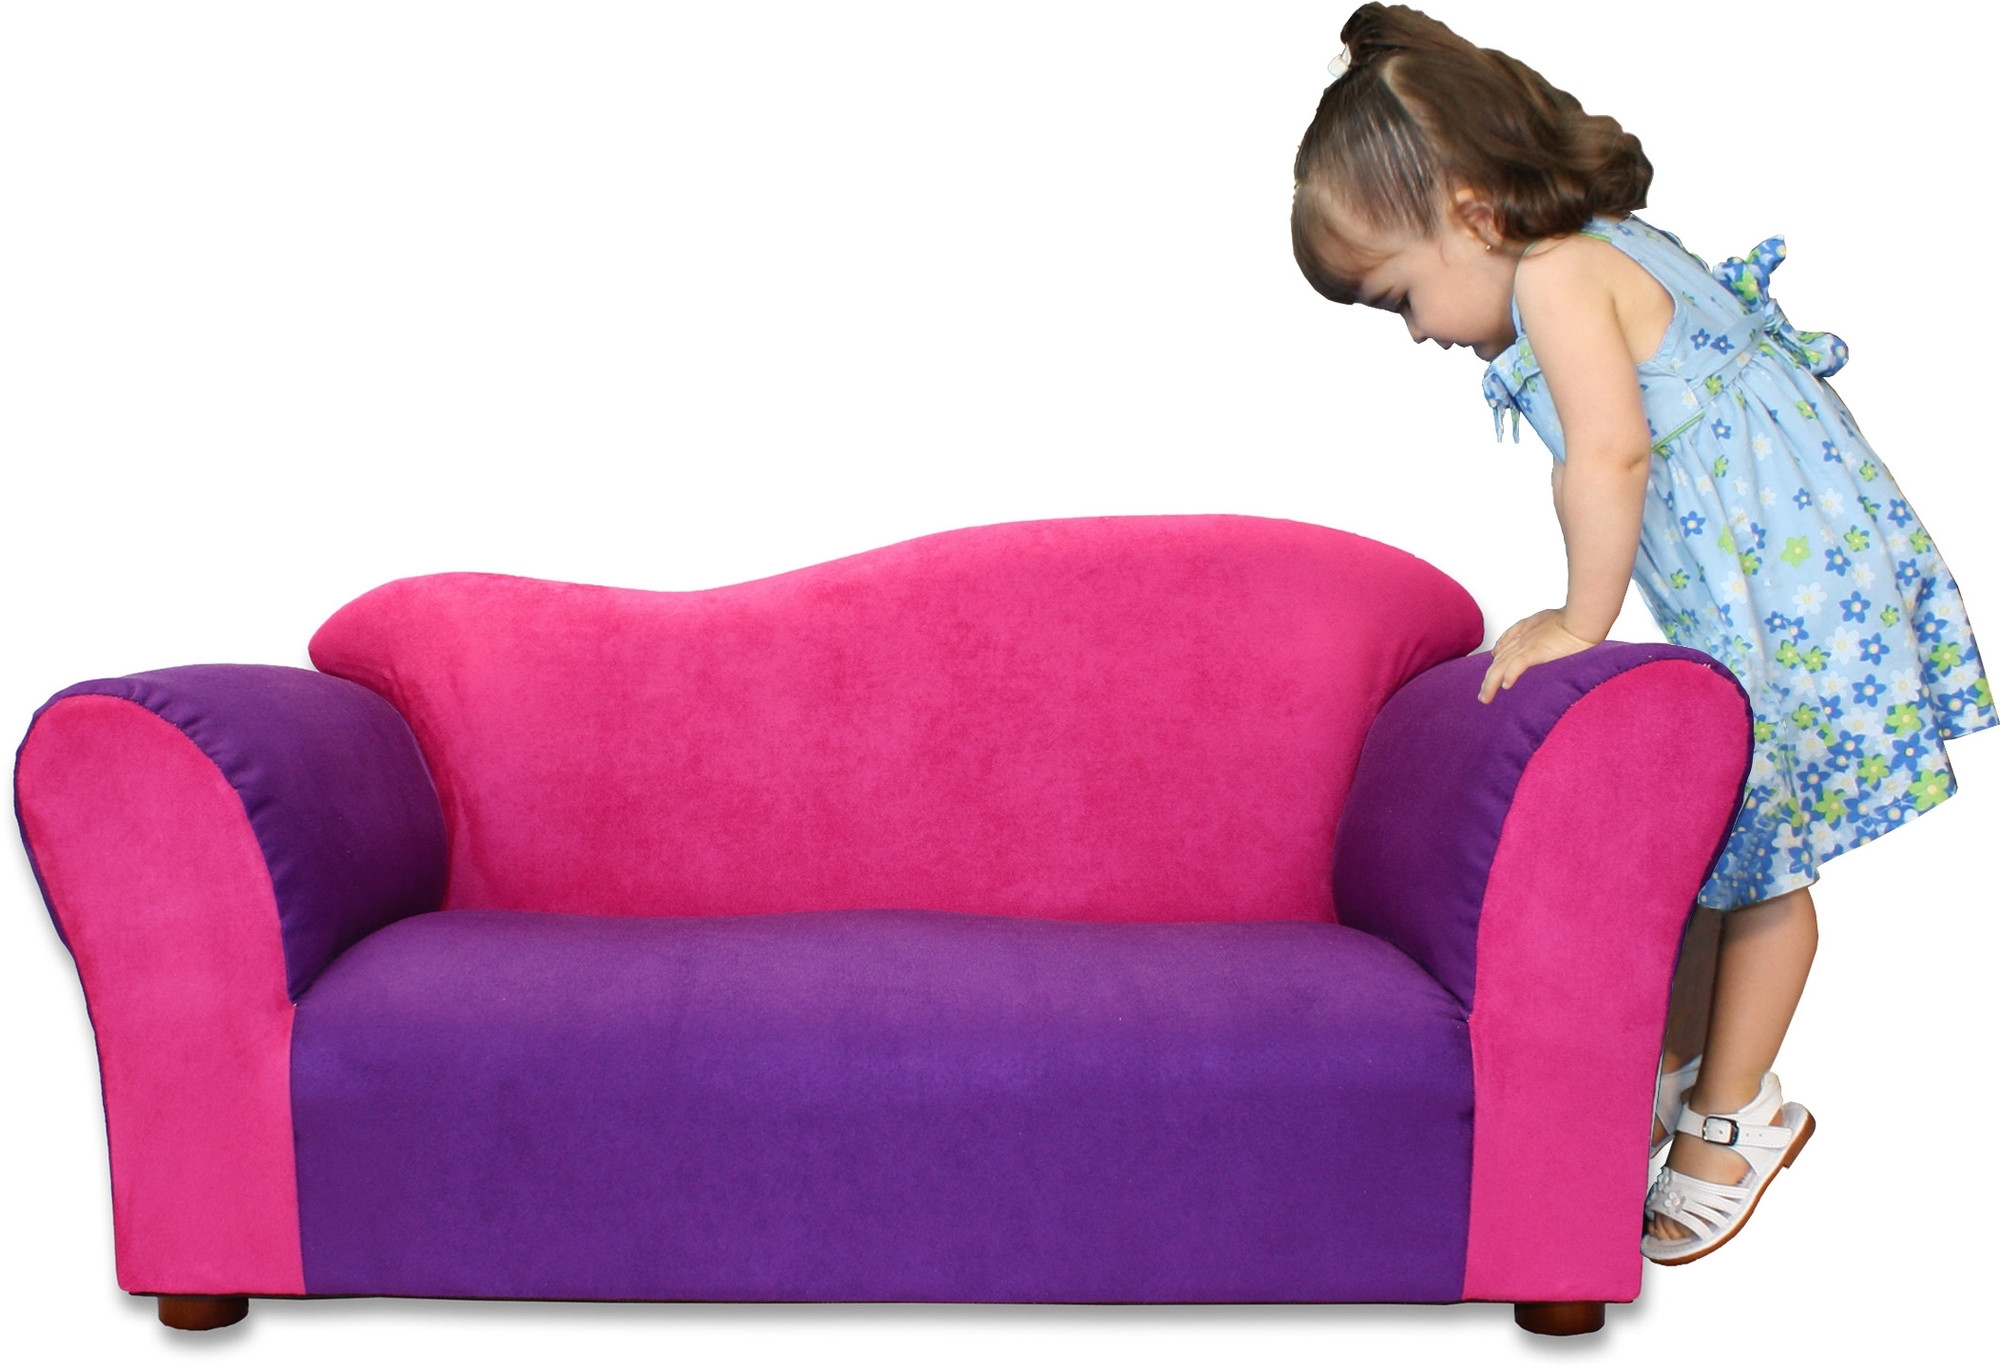 Fashionable Best Toddler Sofa Designs And Ideas – Goodworksfurniture Throughout Disney Sofa Chairs (View 20 of 20)